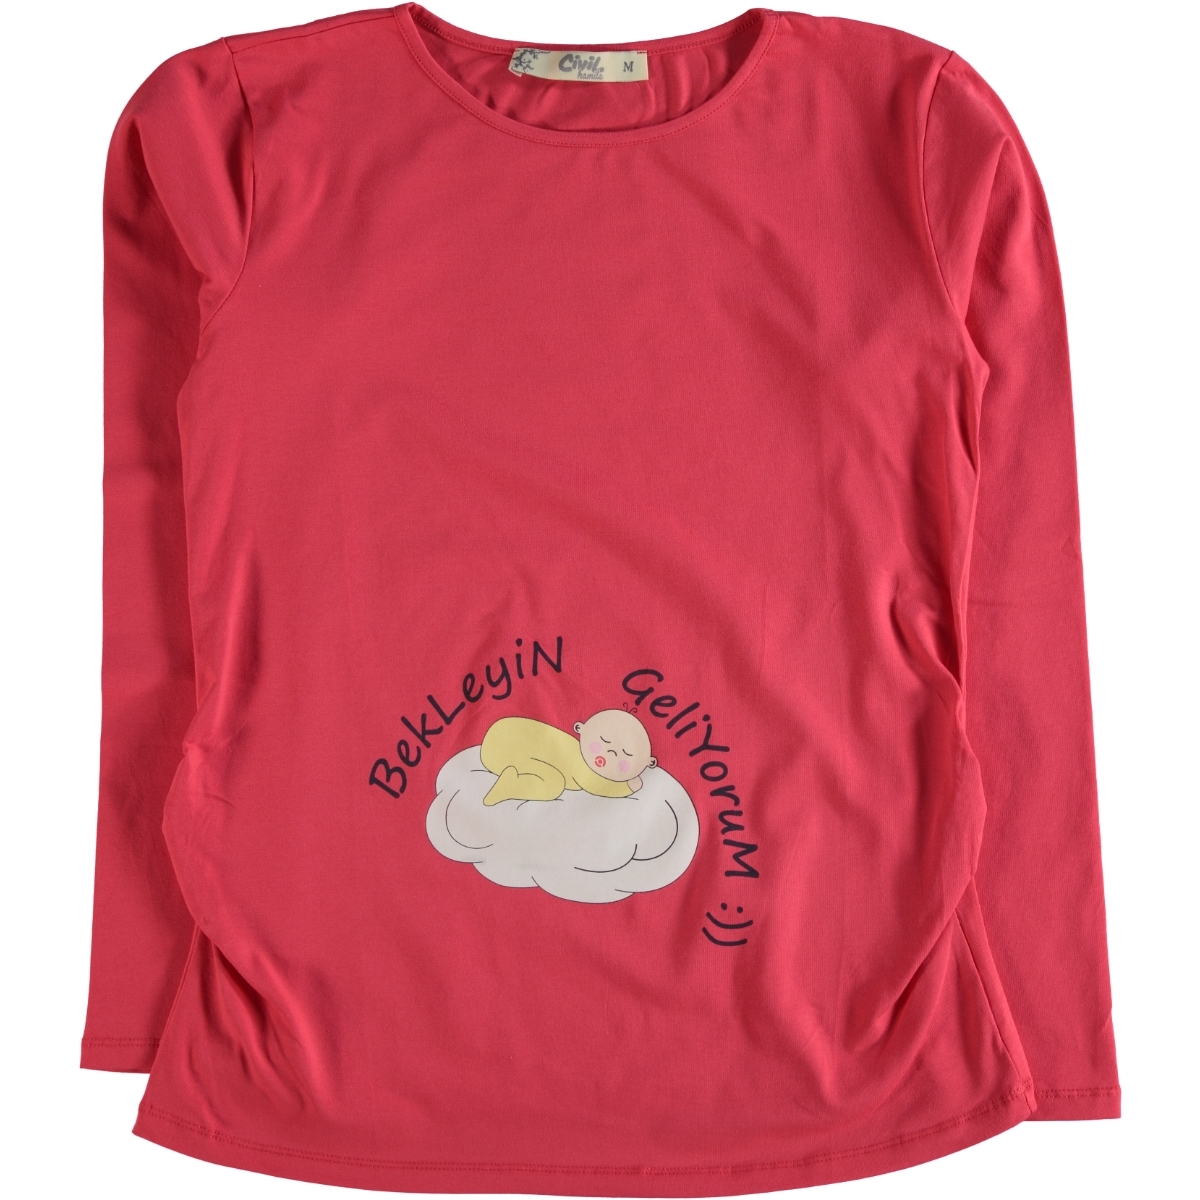 Cvl Pregnant combed cotton T-shirt m-XXL size tongue in cheek